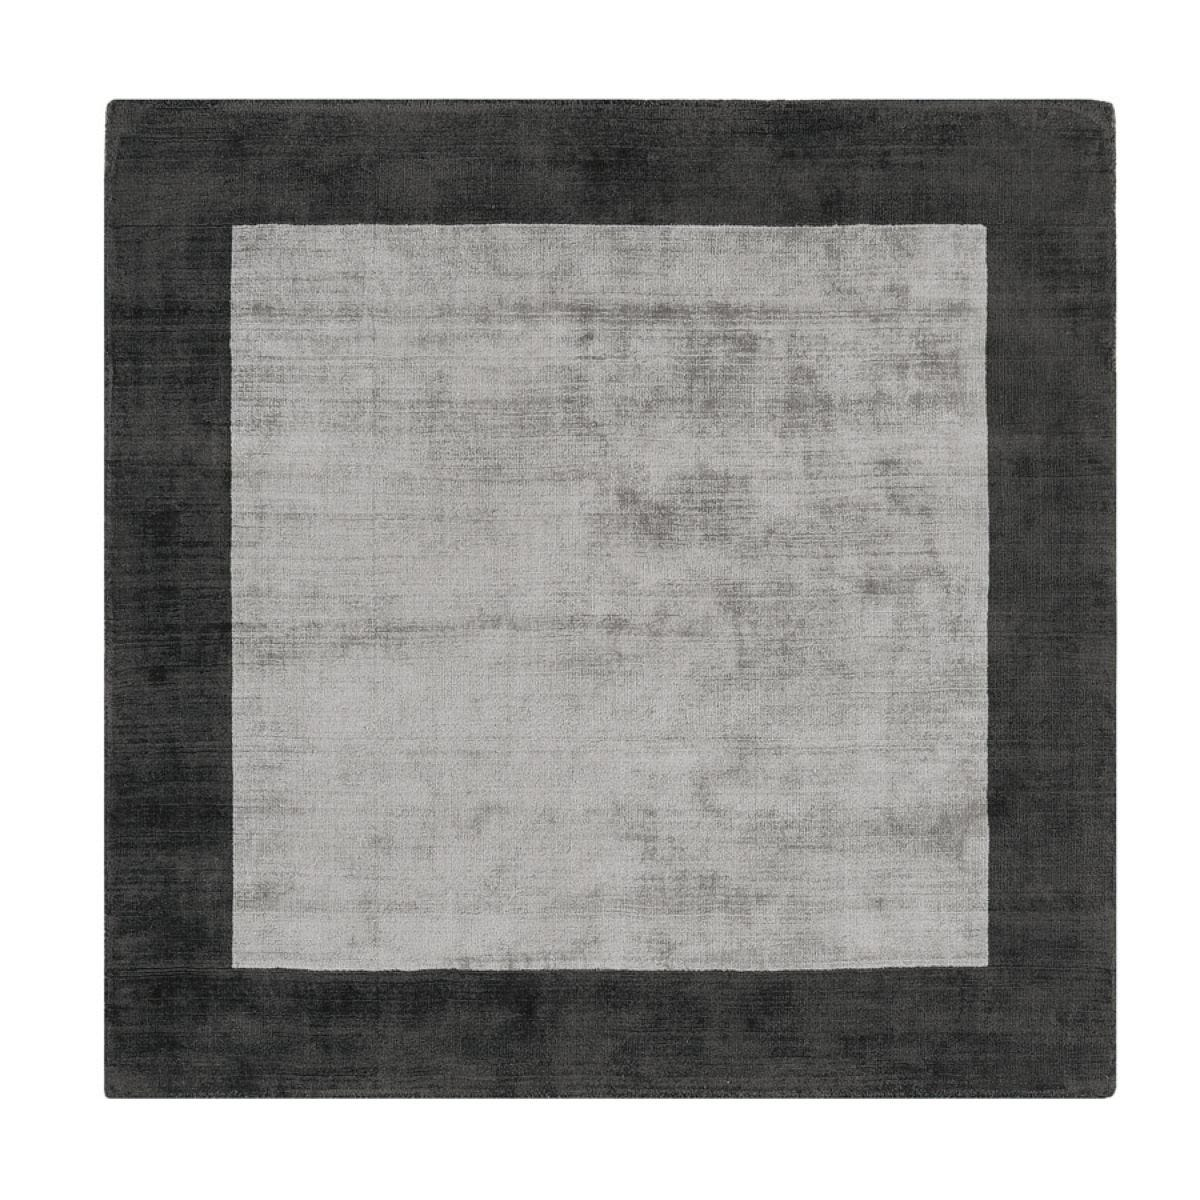 Asiatic Blade Rug, 200 x 200cm – Charcoal/Silver